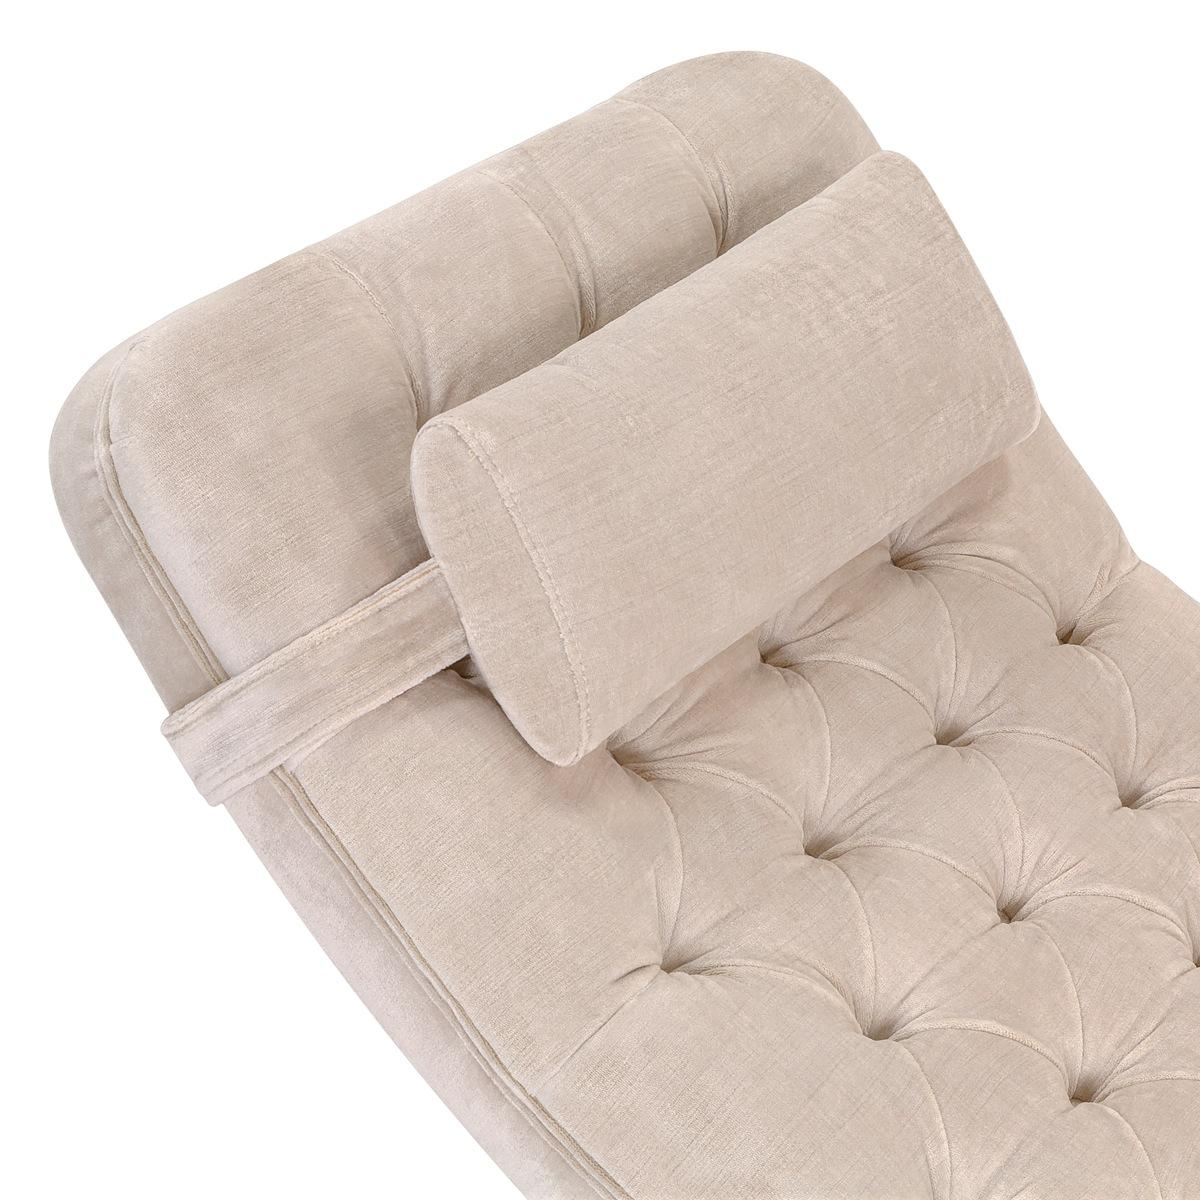 Nampa Upholstered Chaise Lounge Chair Safavieh Couture